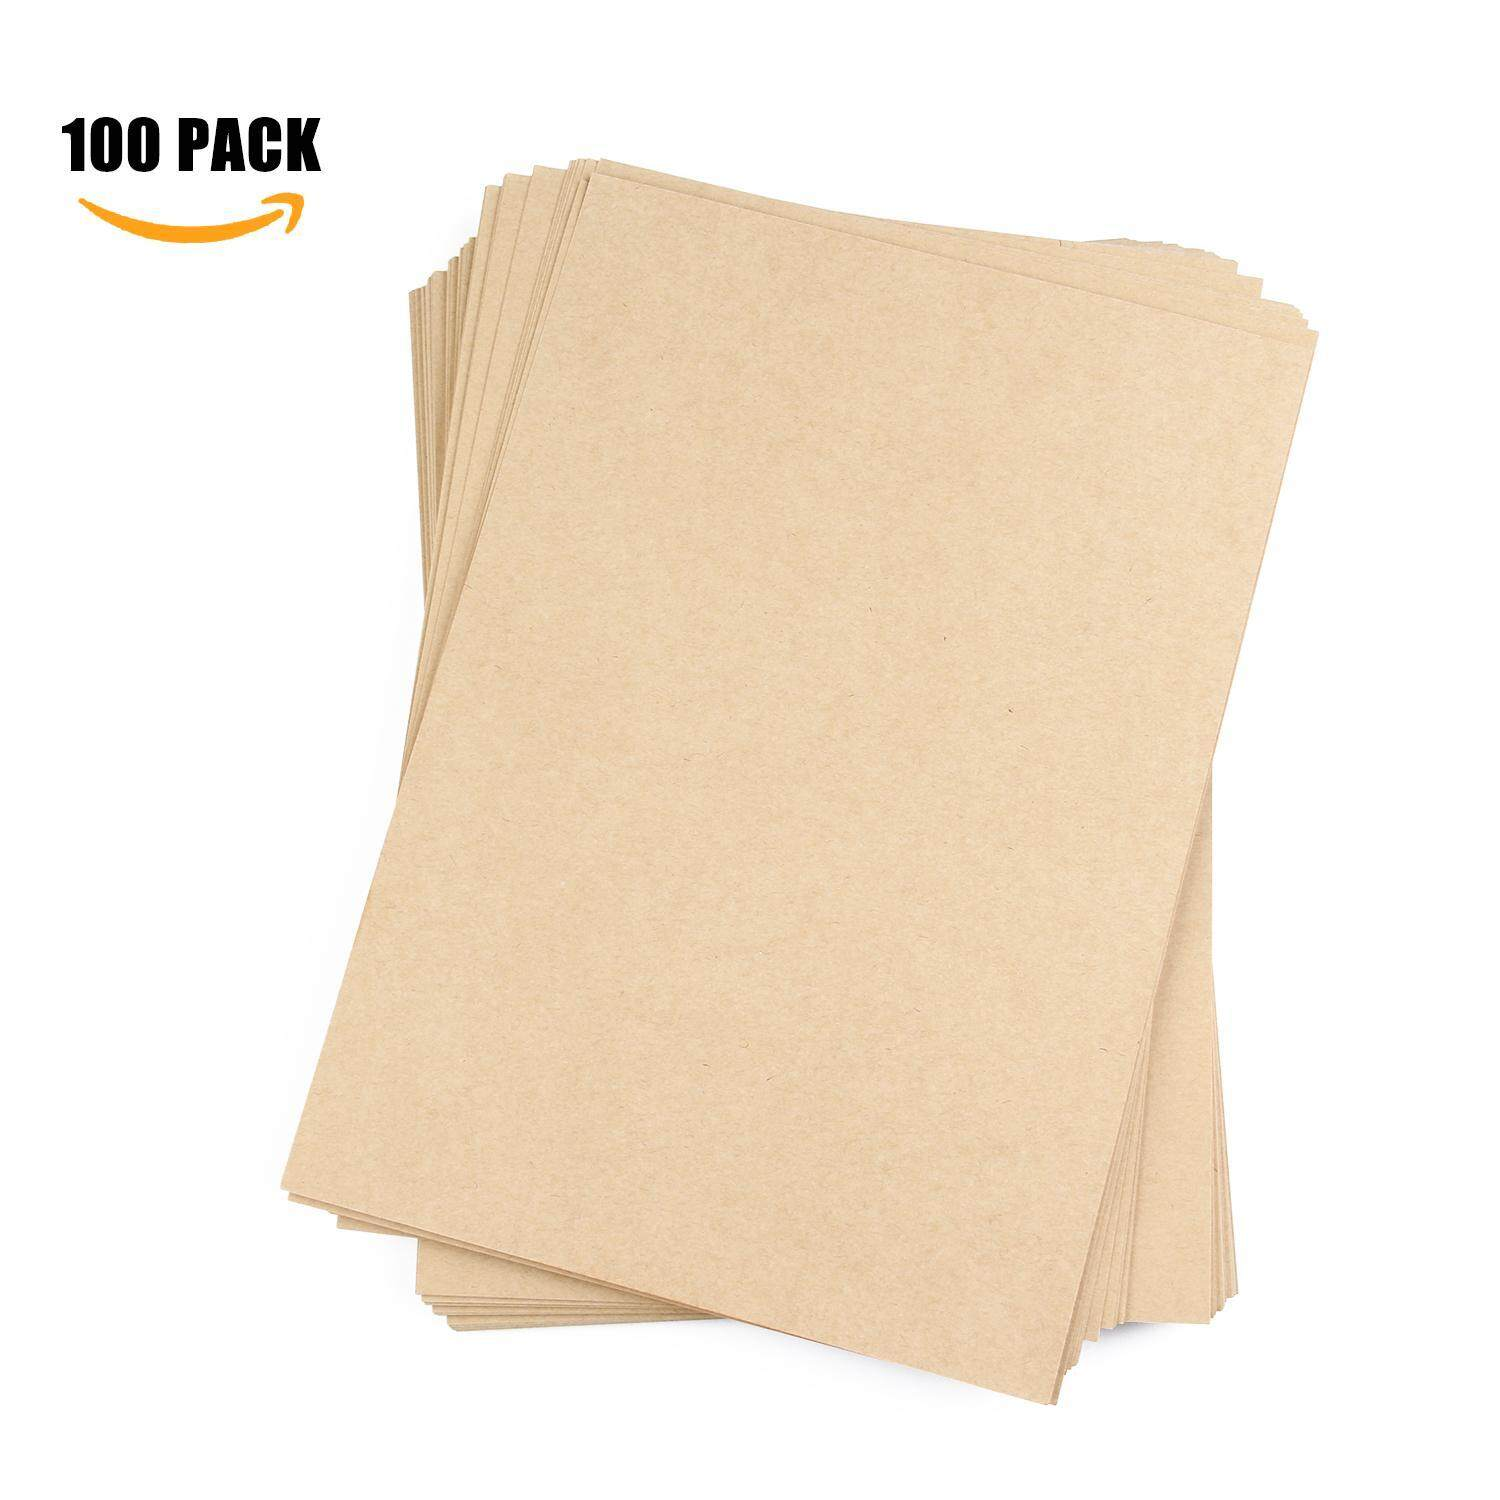 yooc Kraft Paper, Pack Of 50 Natural Packing Wrapping Kraft Paper - 8.26x11.69inch - intl